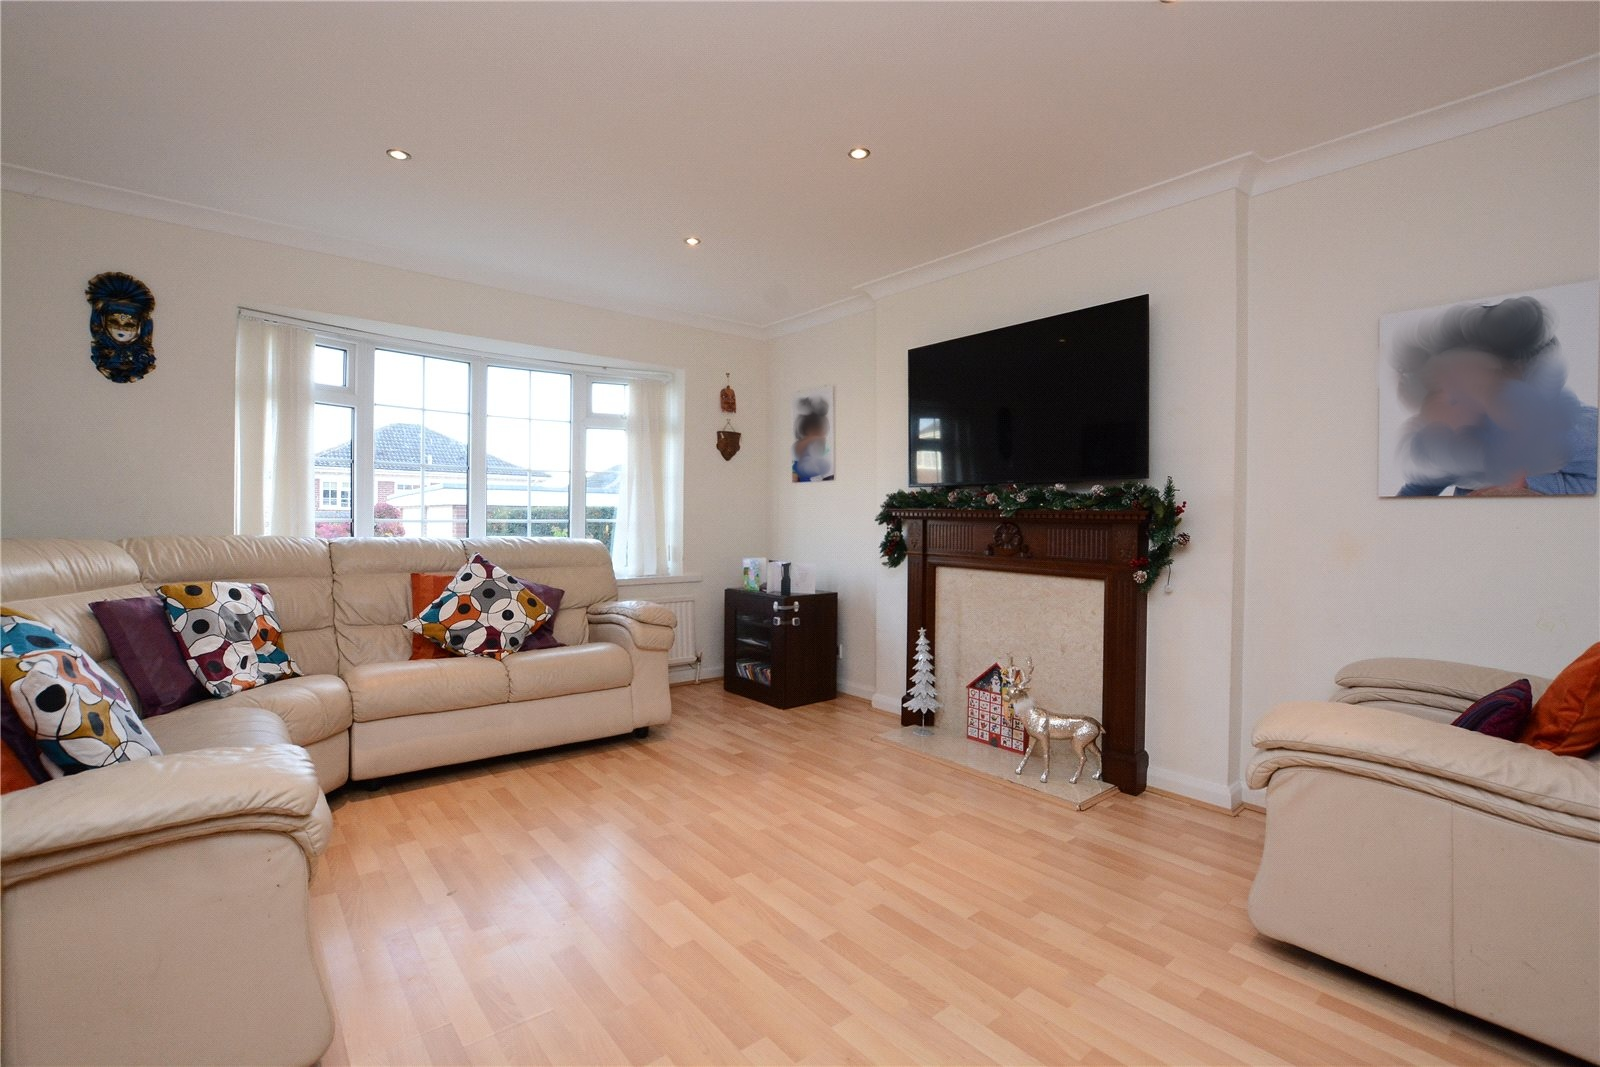 Property for sale in Oakwood, interior reception room of family home